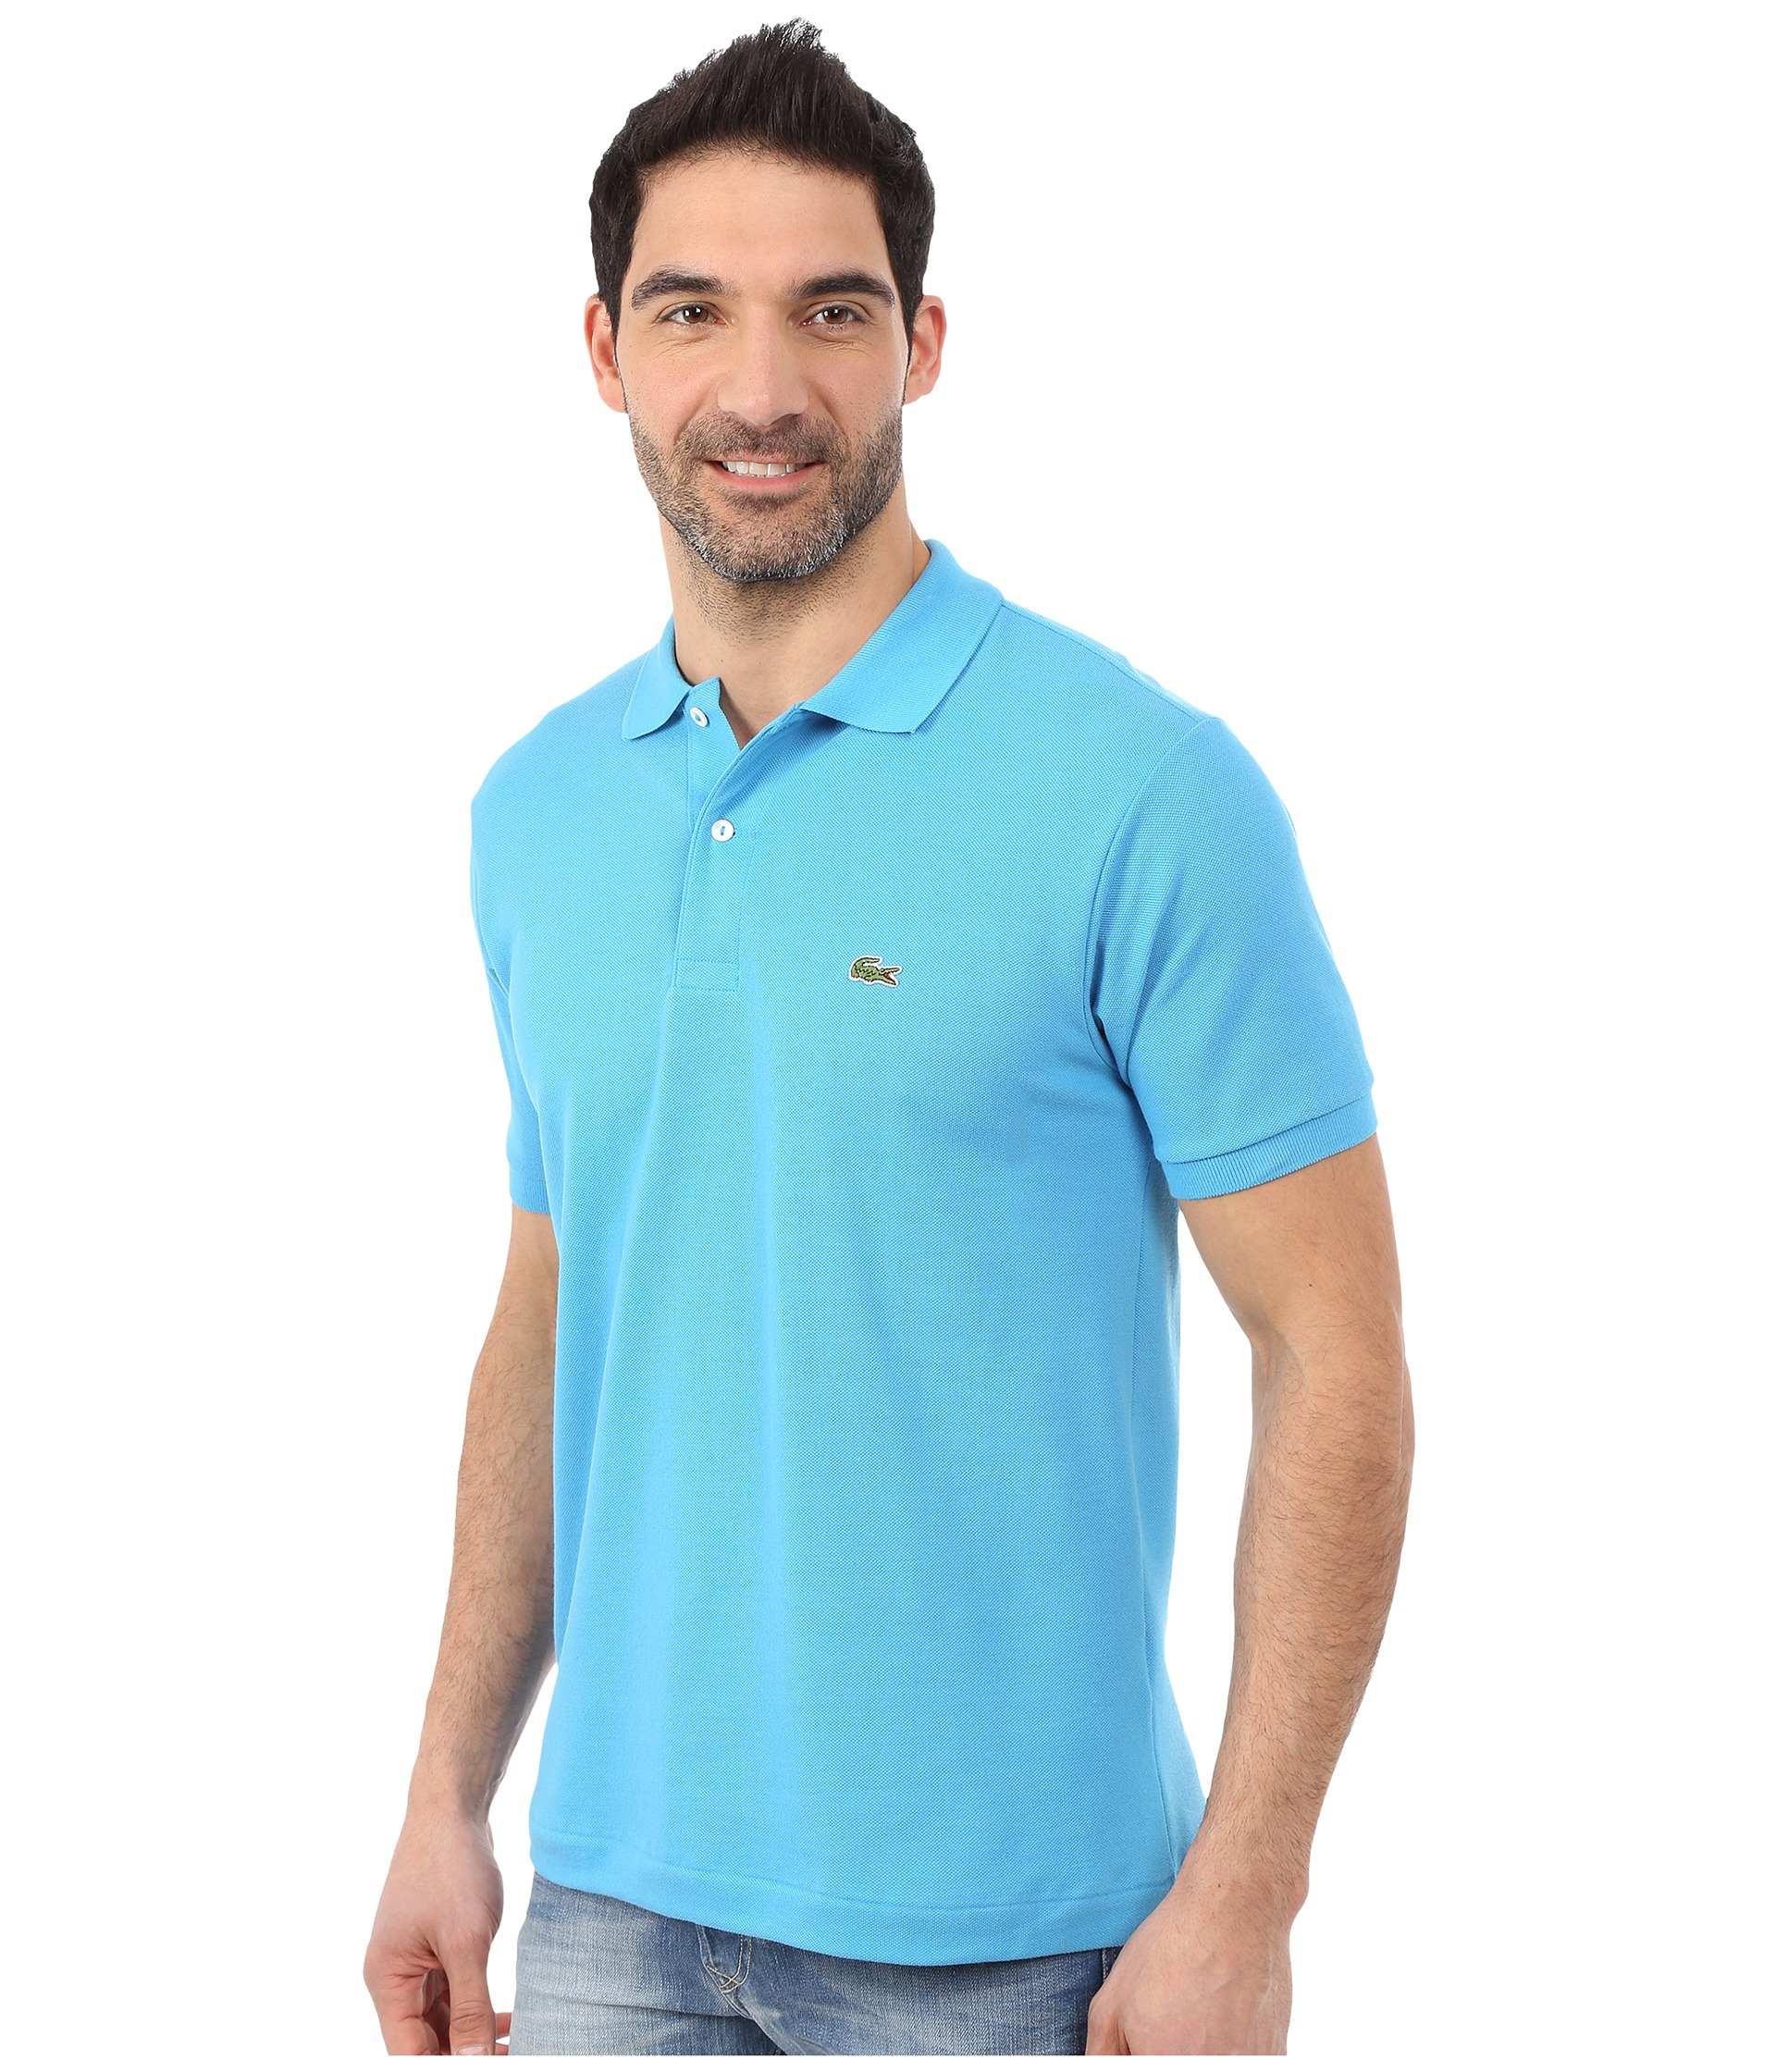 Lyst - Lacoste L1212 Classic Pique Polo Shirt in Blue for Men 0f5cdfee9